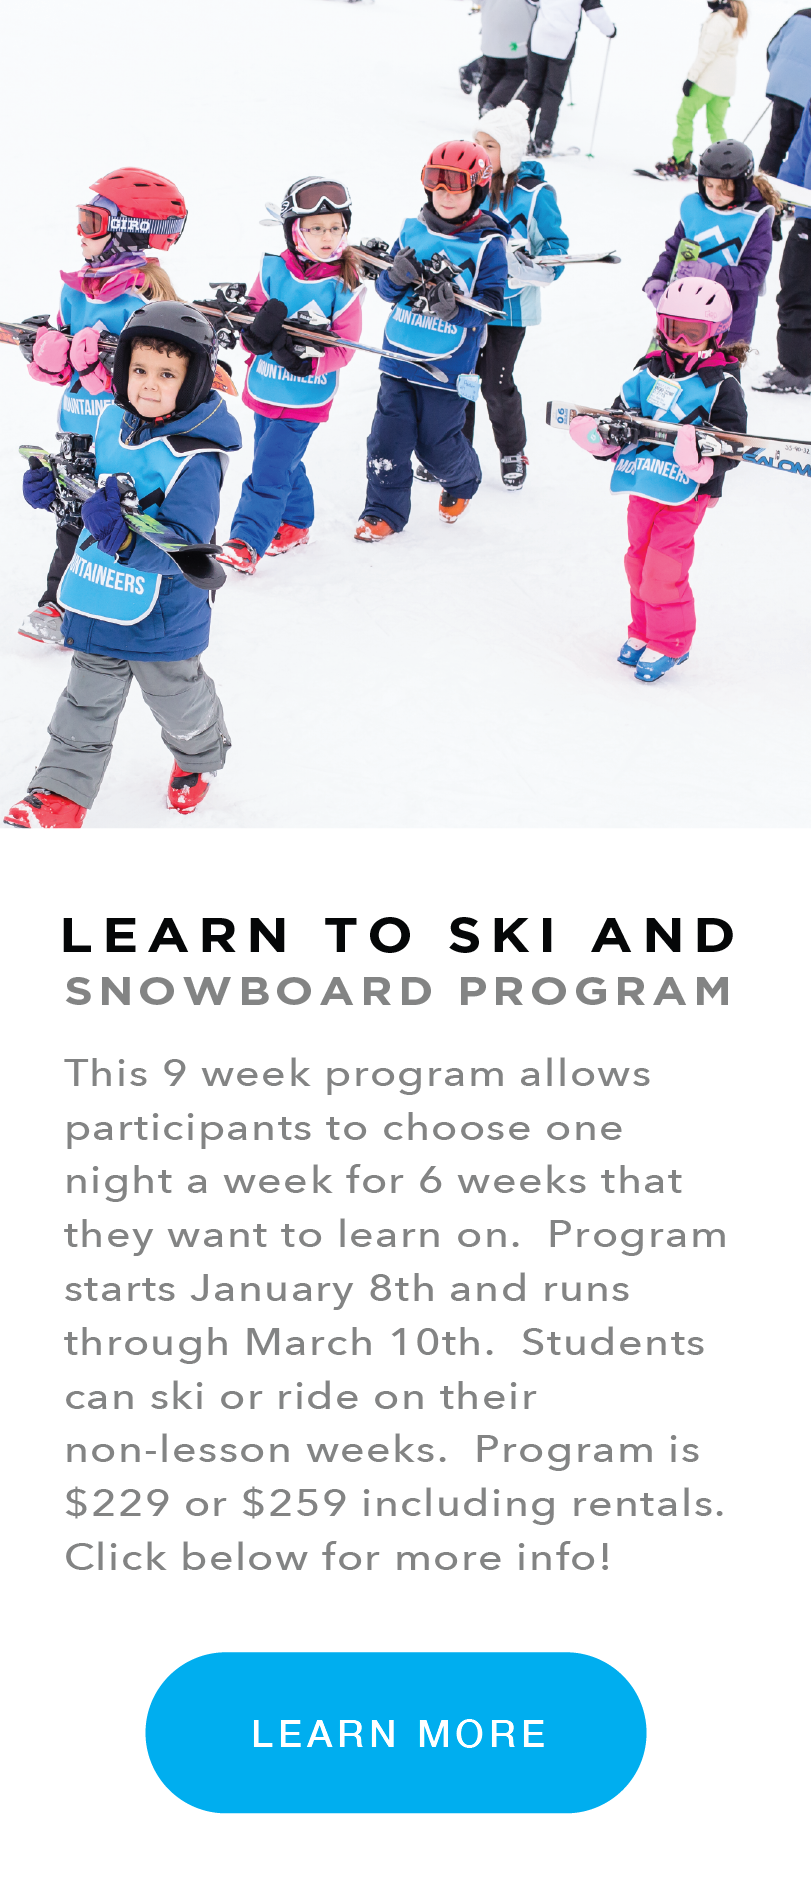 Montage Mountain Ski School